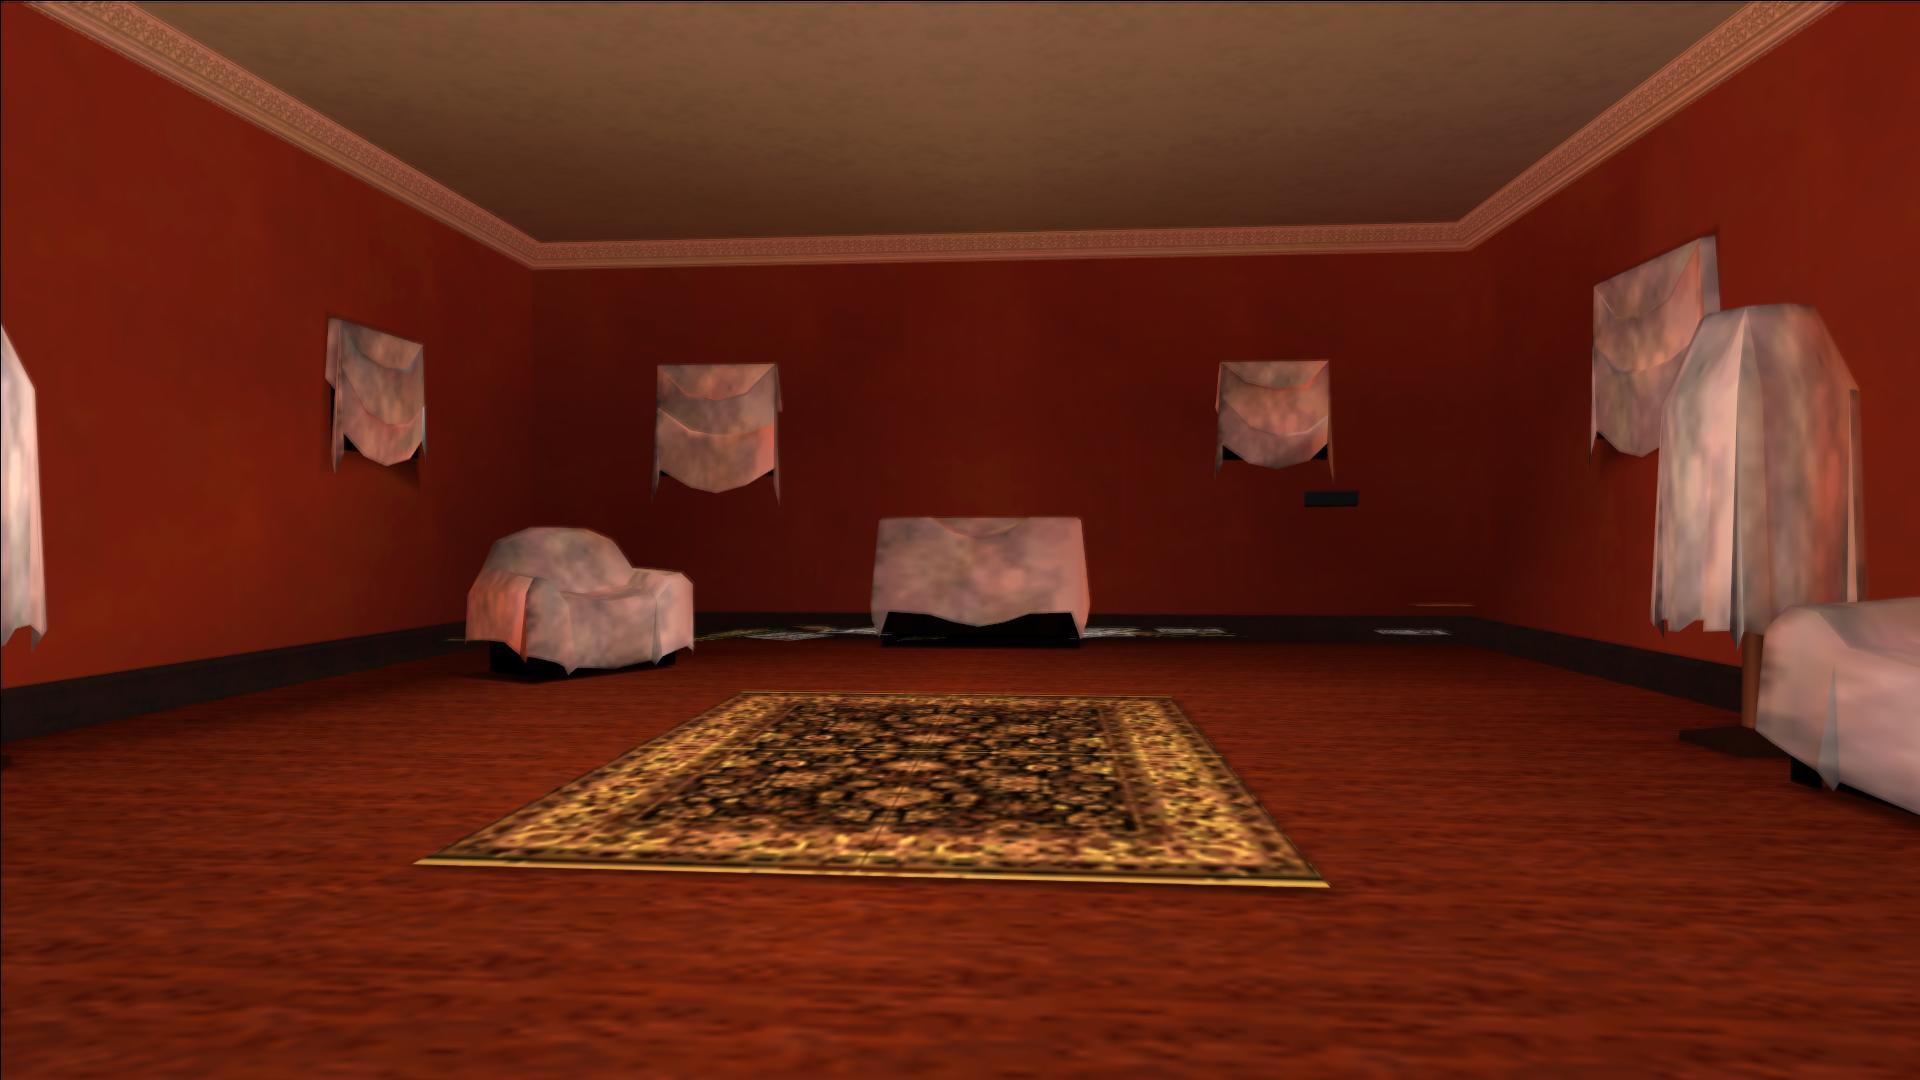 The updated Catalina's mansion interior